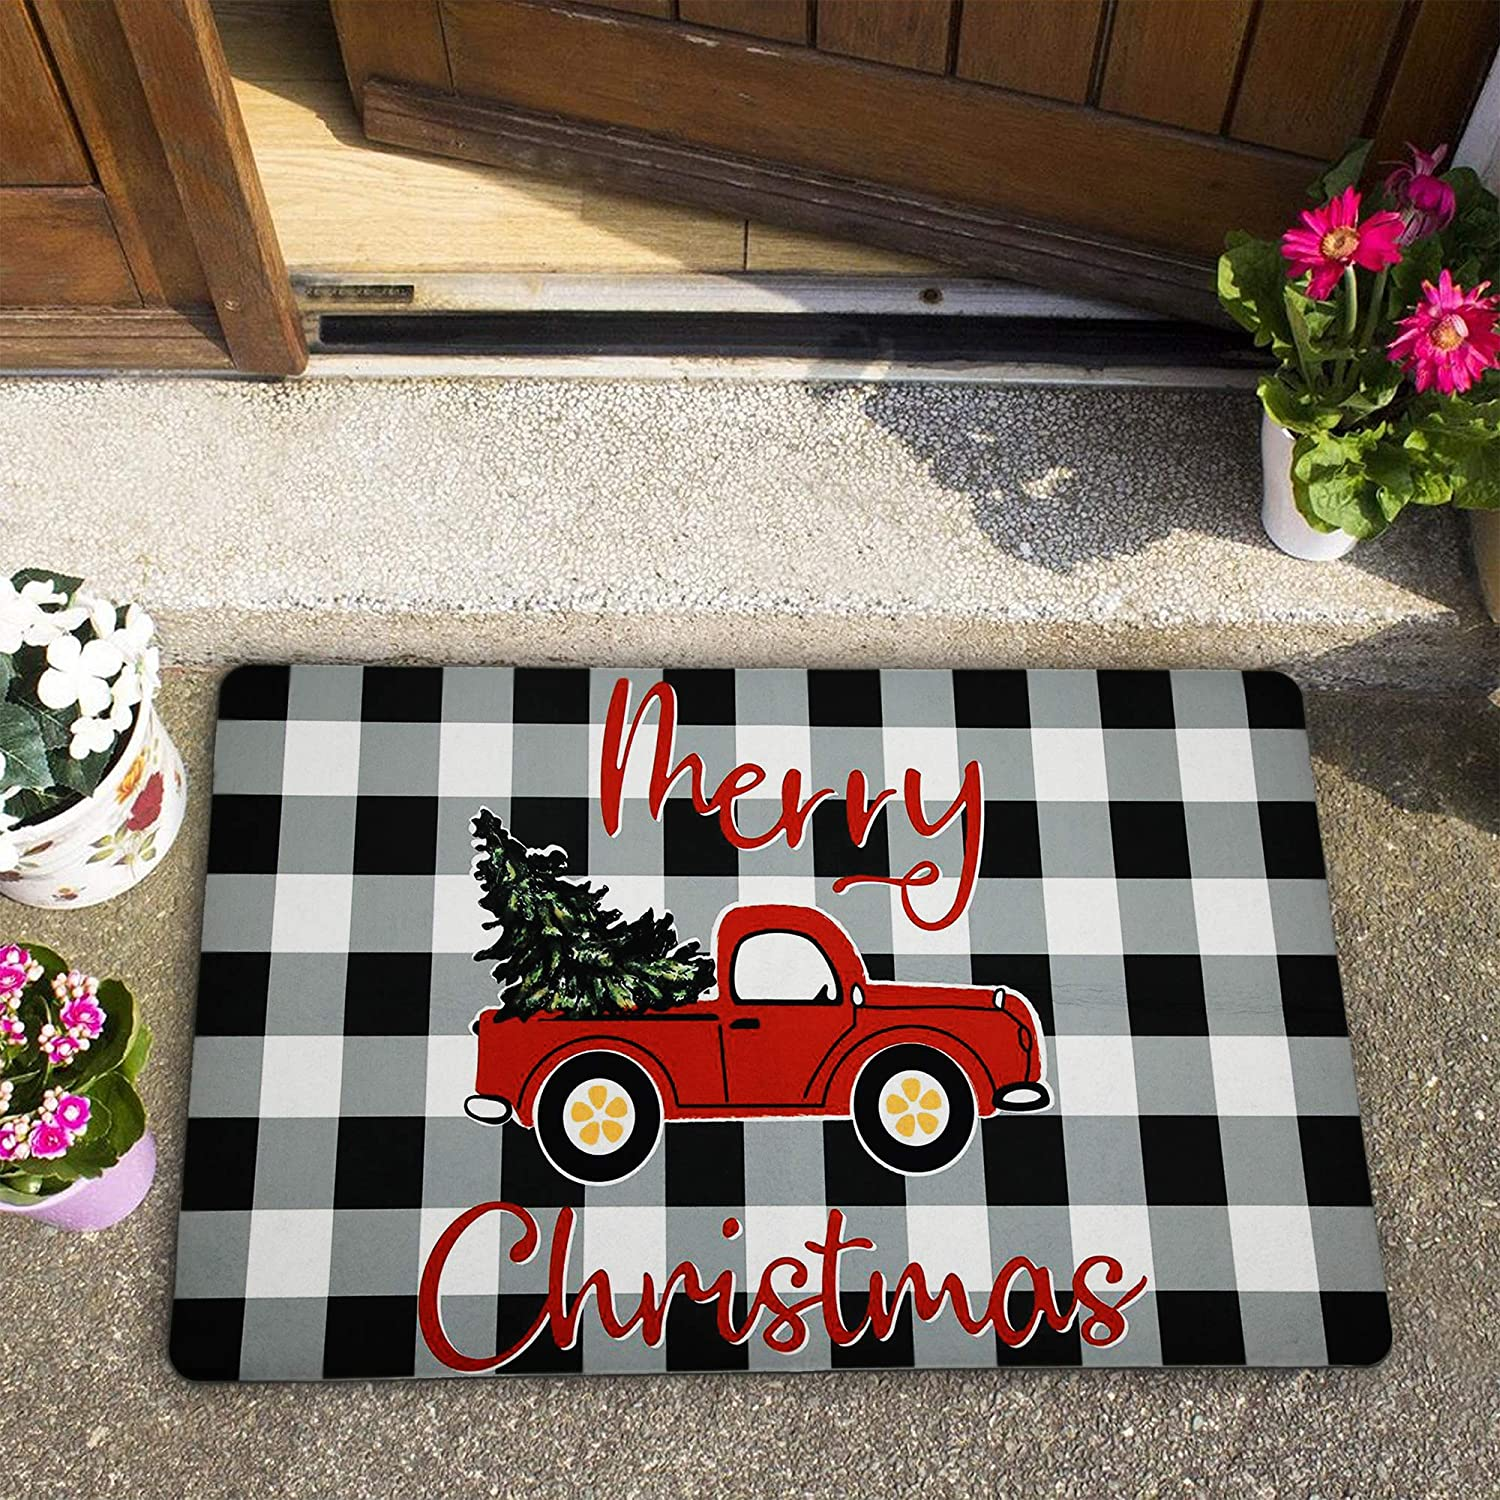 Merry Christmas Doormats Winter Holiday Area Rugs 18 × 30 Inches Black and White Plaid Kitchen Rug Christmas Pine Truck Floor Mat for Entryway, Living Room, Kitchen, Bathroom